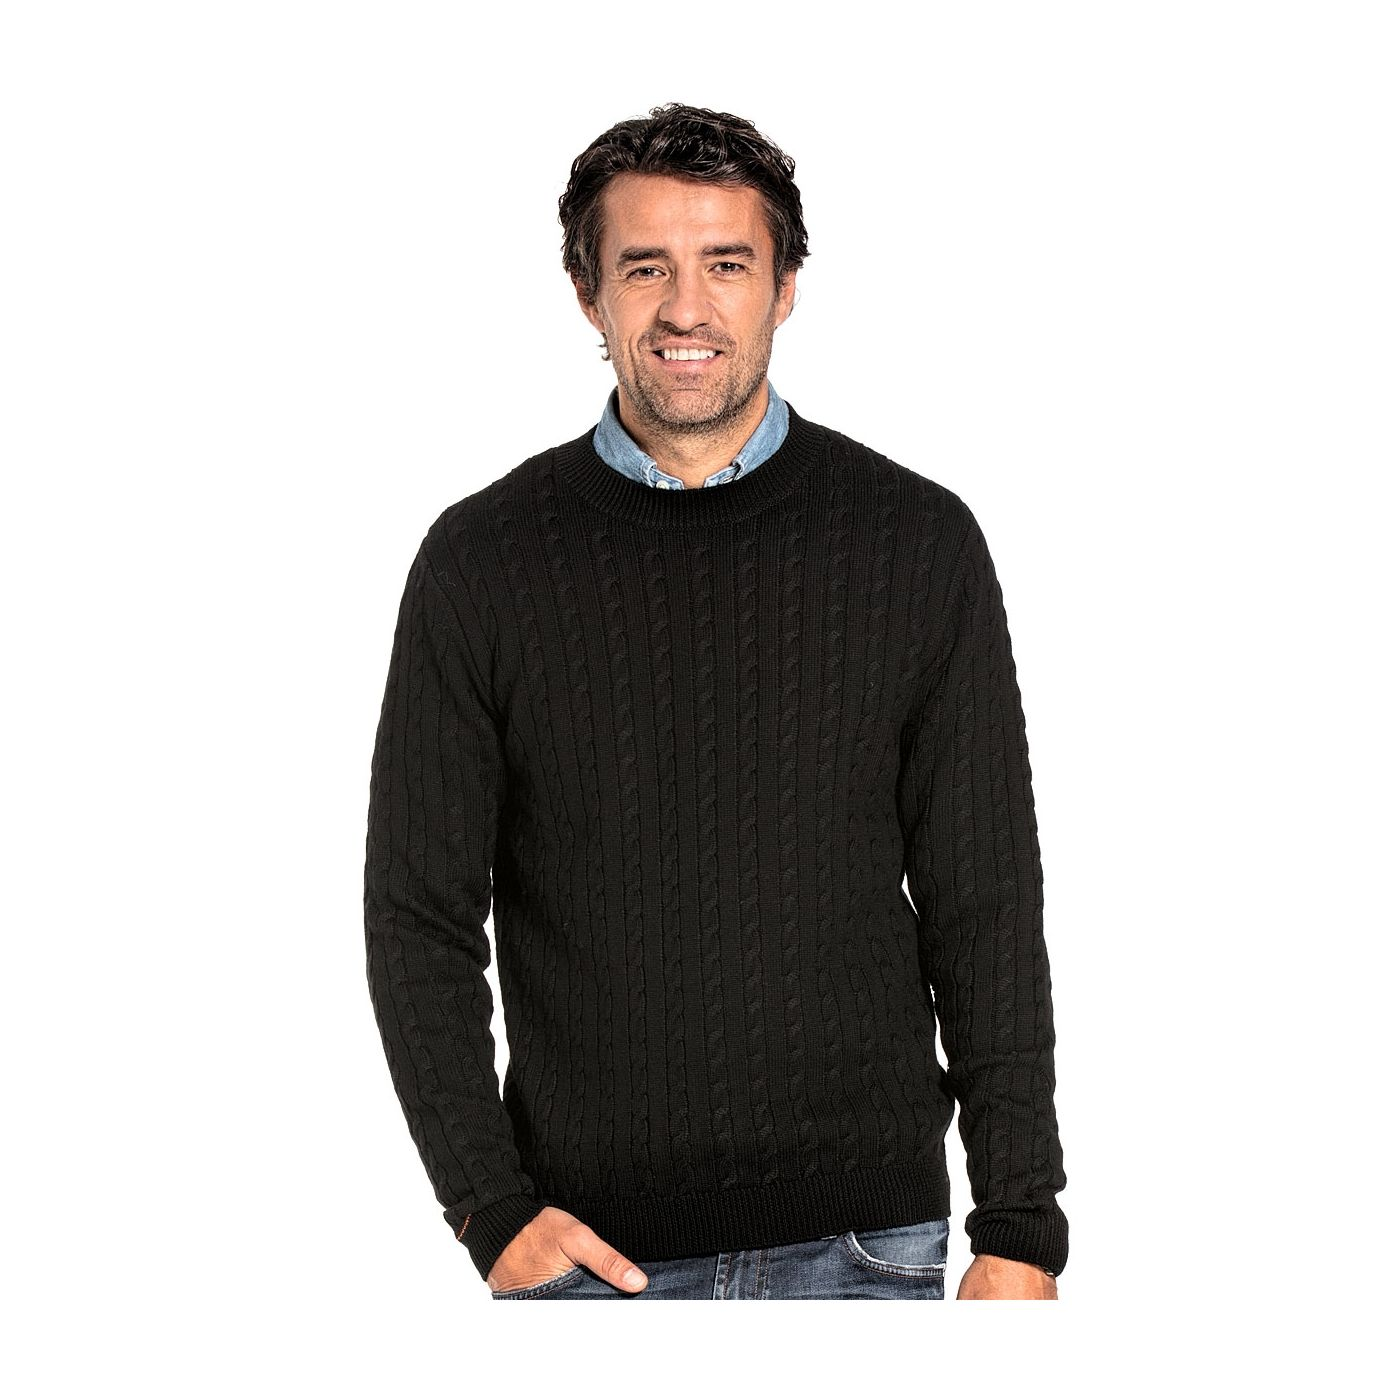 Cable knit sweater for men made of Merino wool in Black